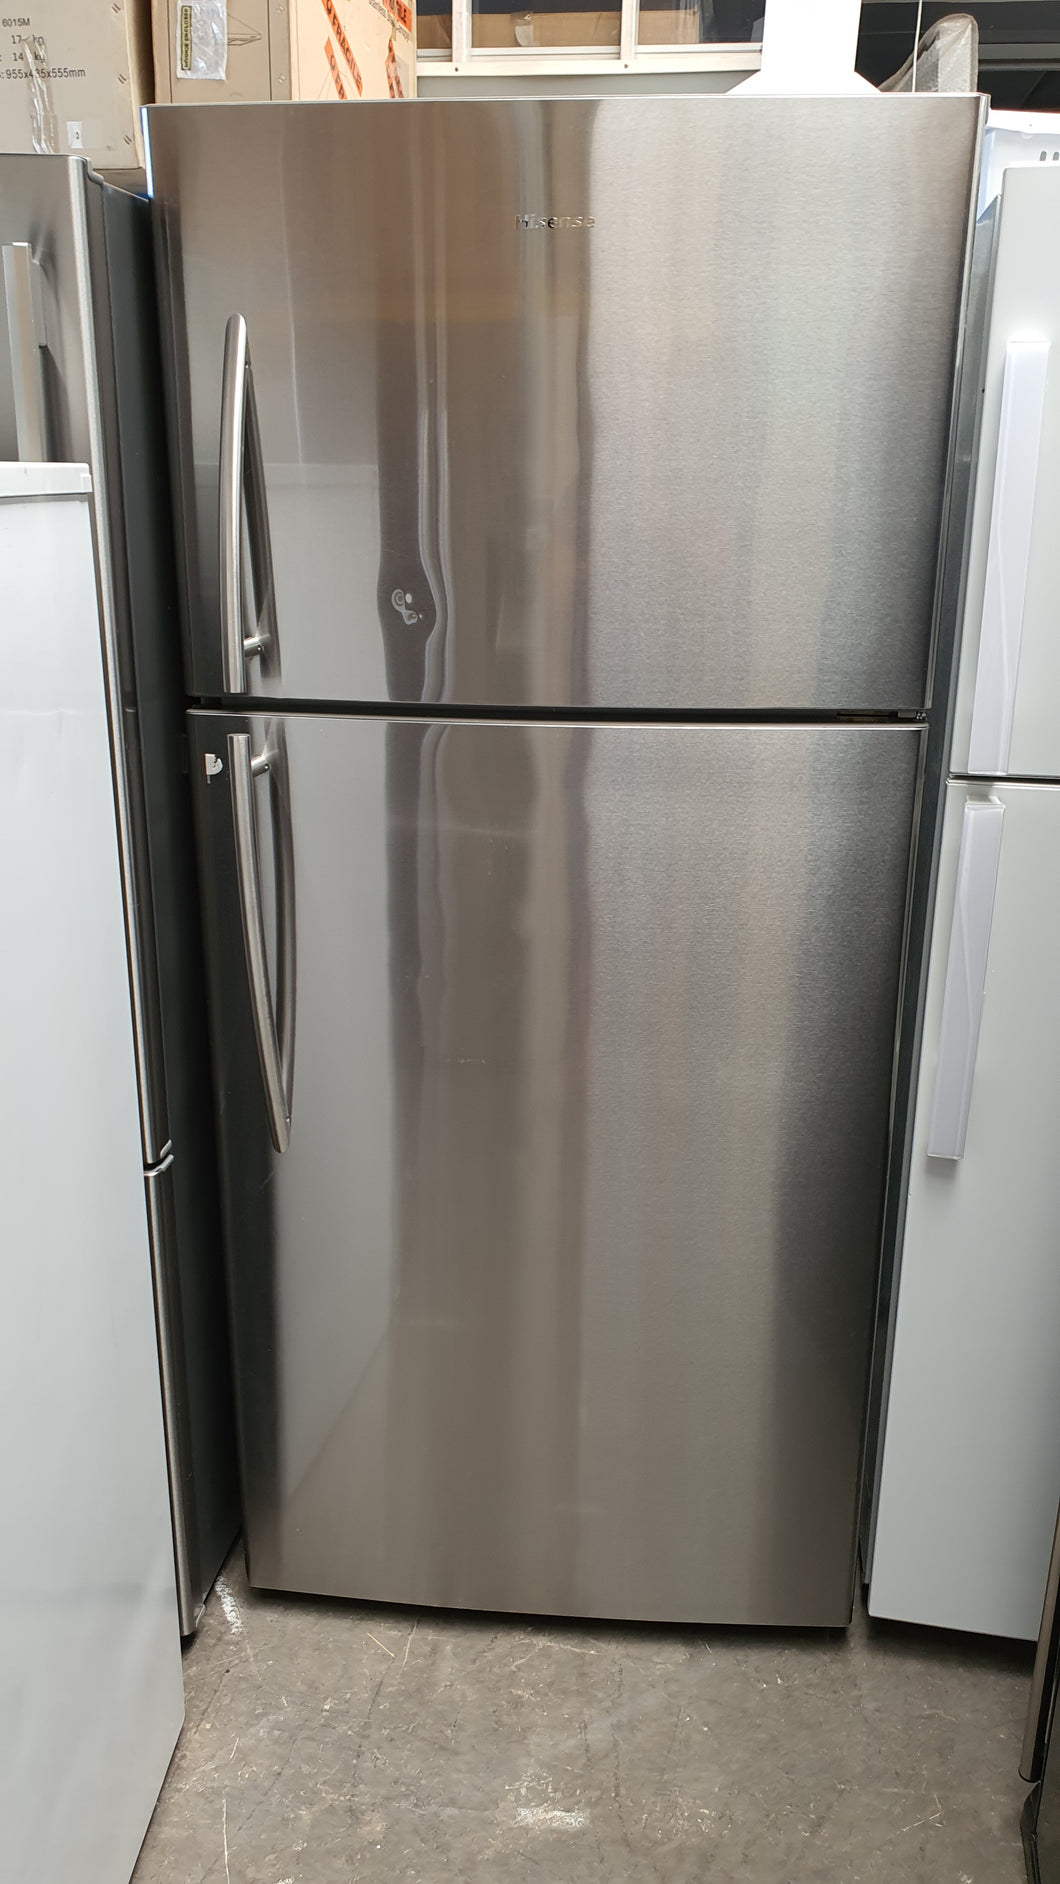 Hisense 526L Top Mount Fridge